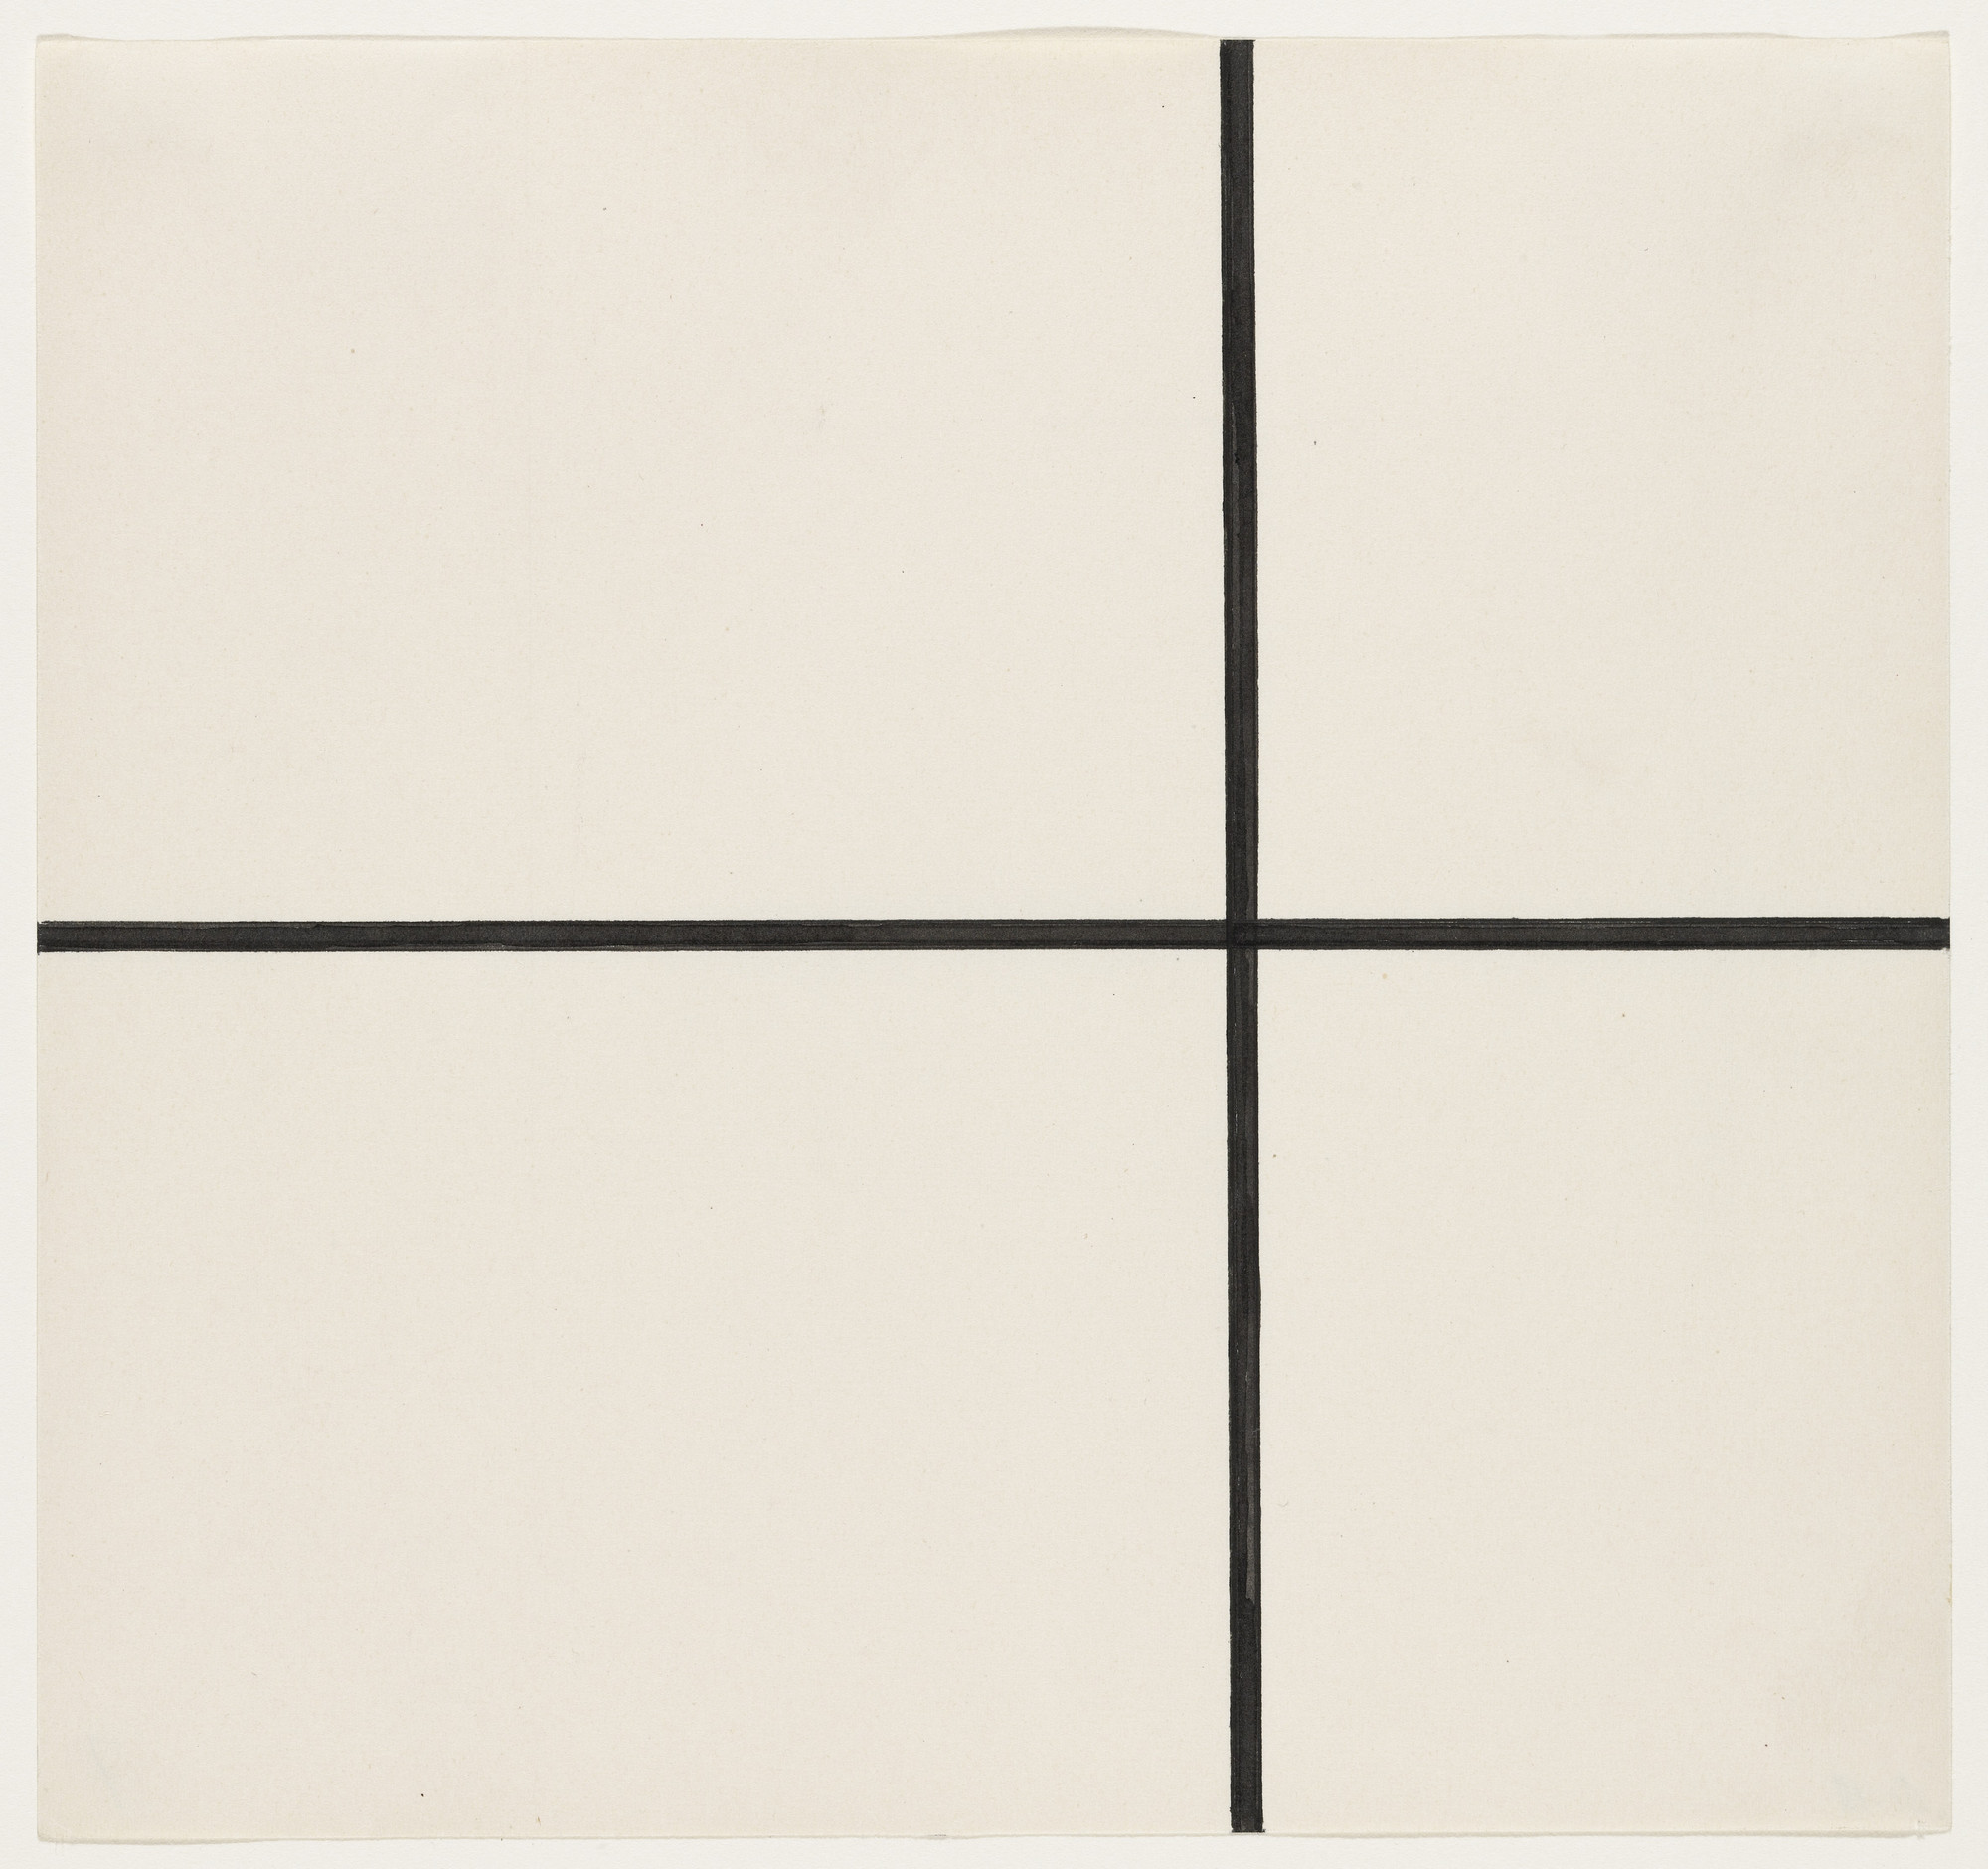 Ellsworth Kelly. Horizontal and Vertical Lines. 1951